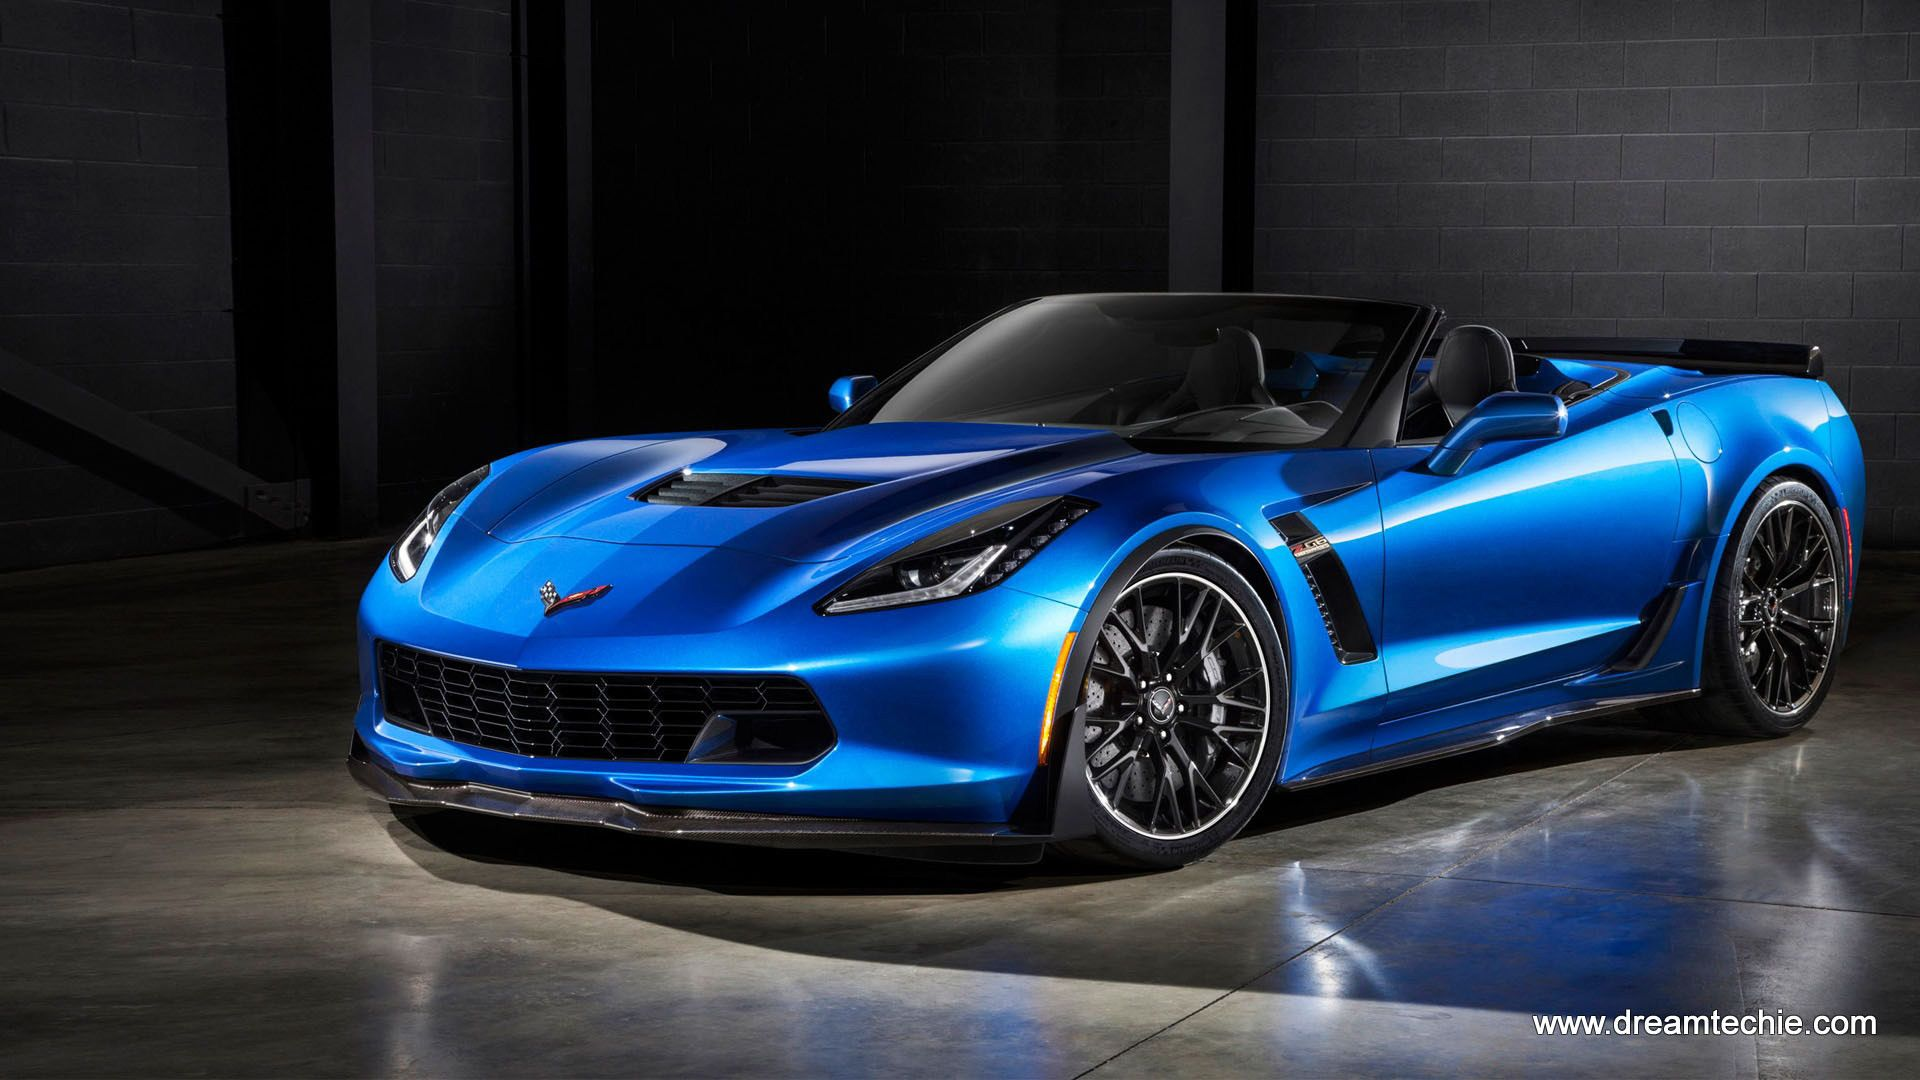 Blue Car Hd Wallpapers Top Free Blue Car Hd Backgrounds